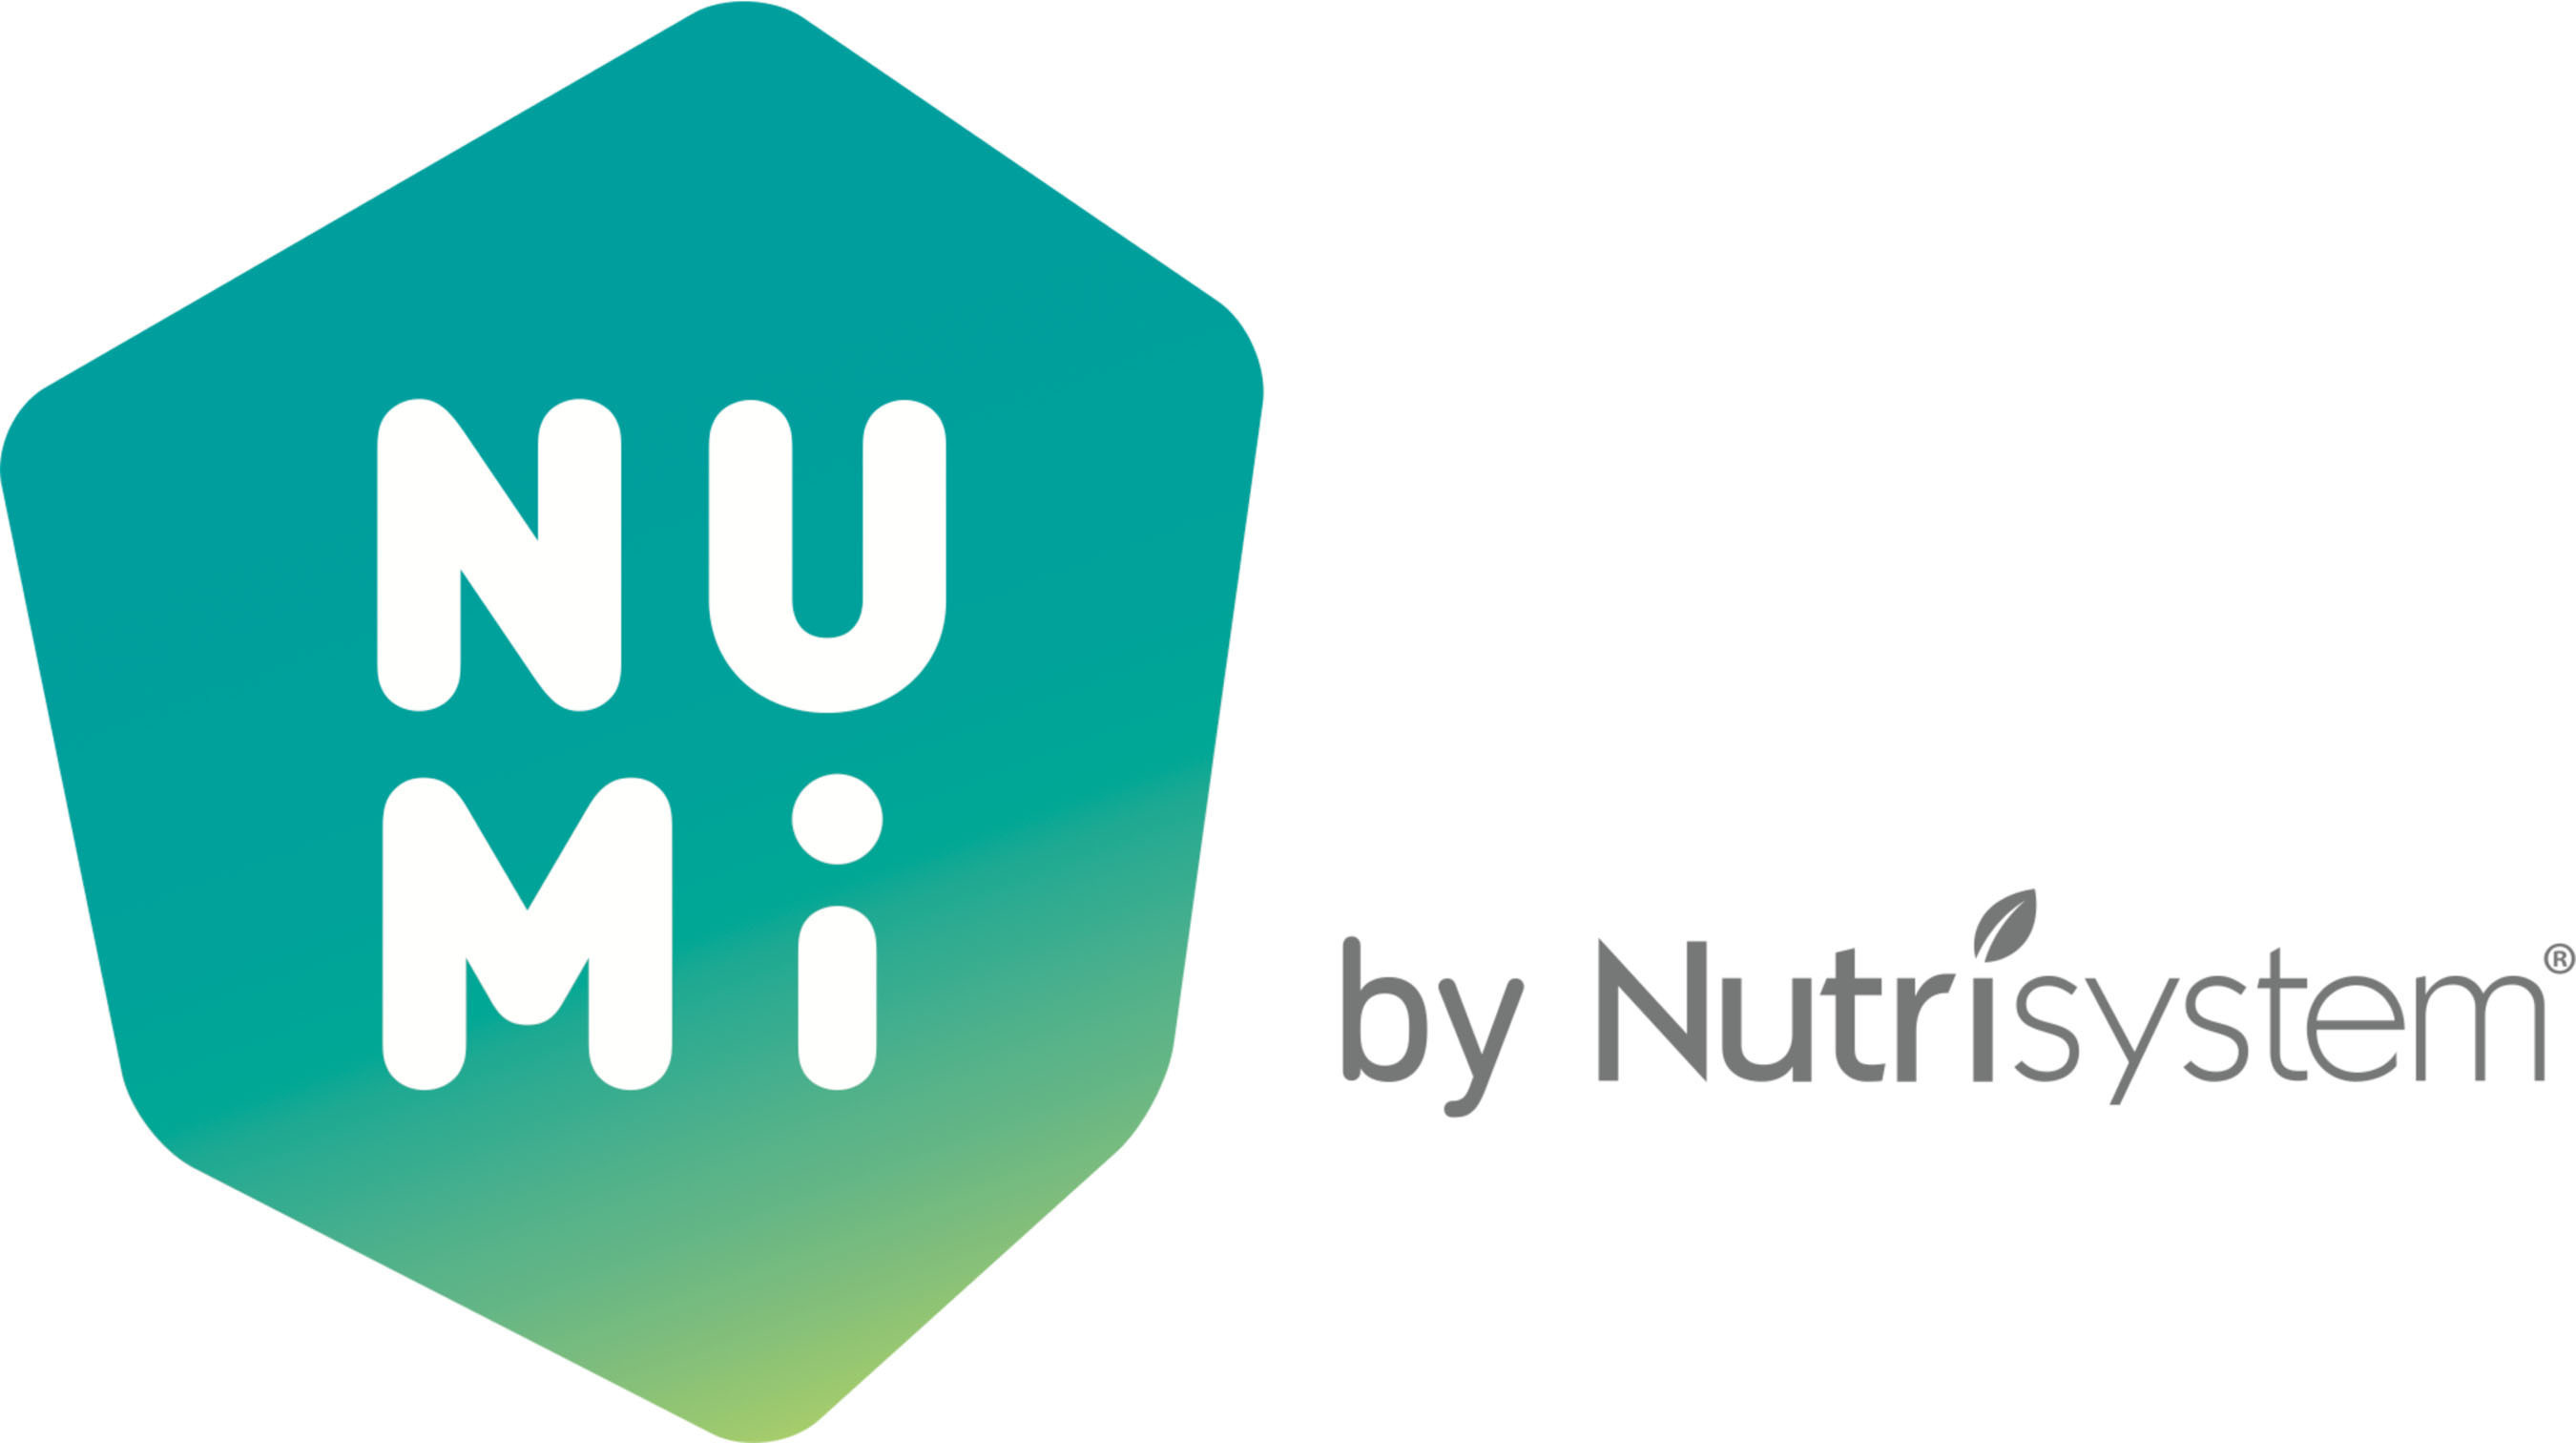 NuMi by Nutrisystem App Now Available for iPhone as Free App